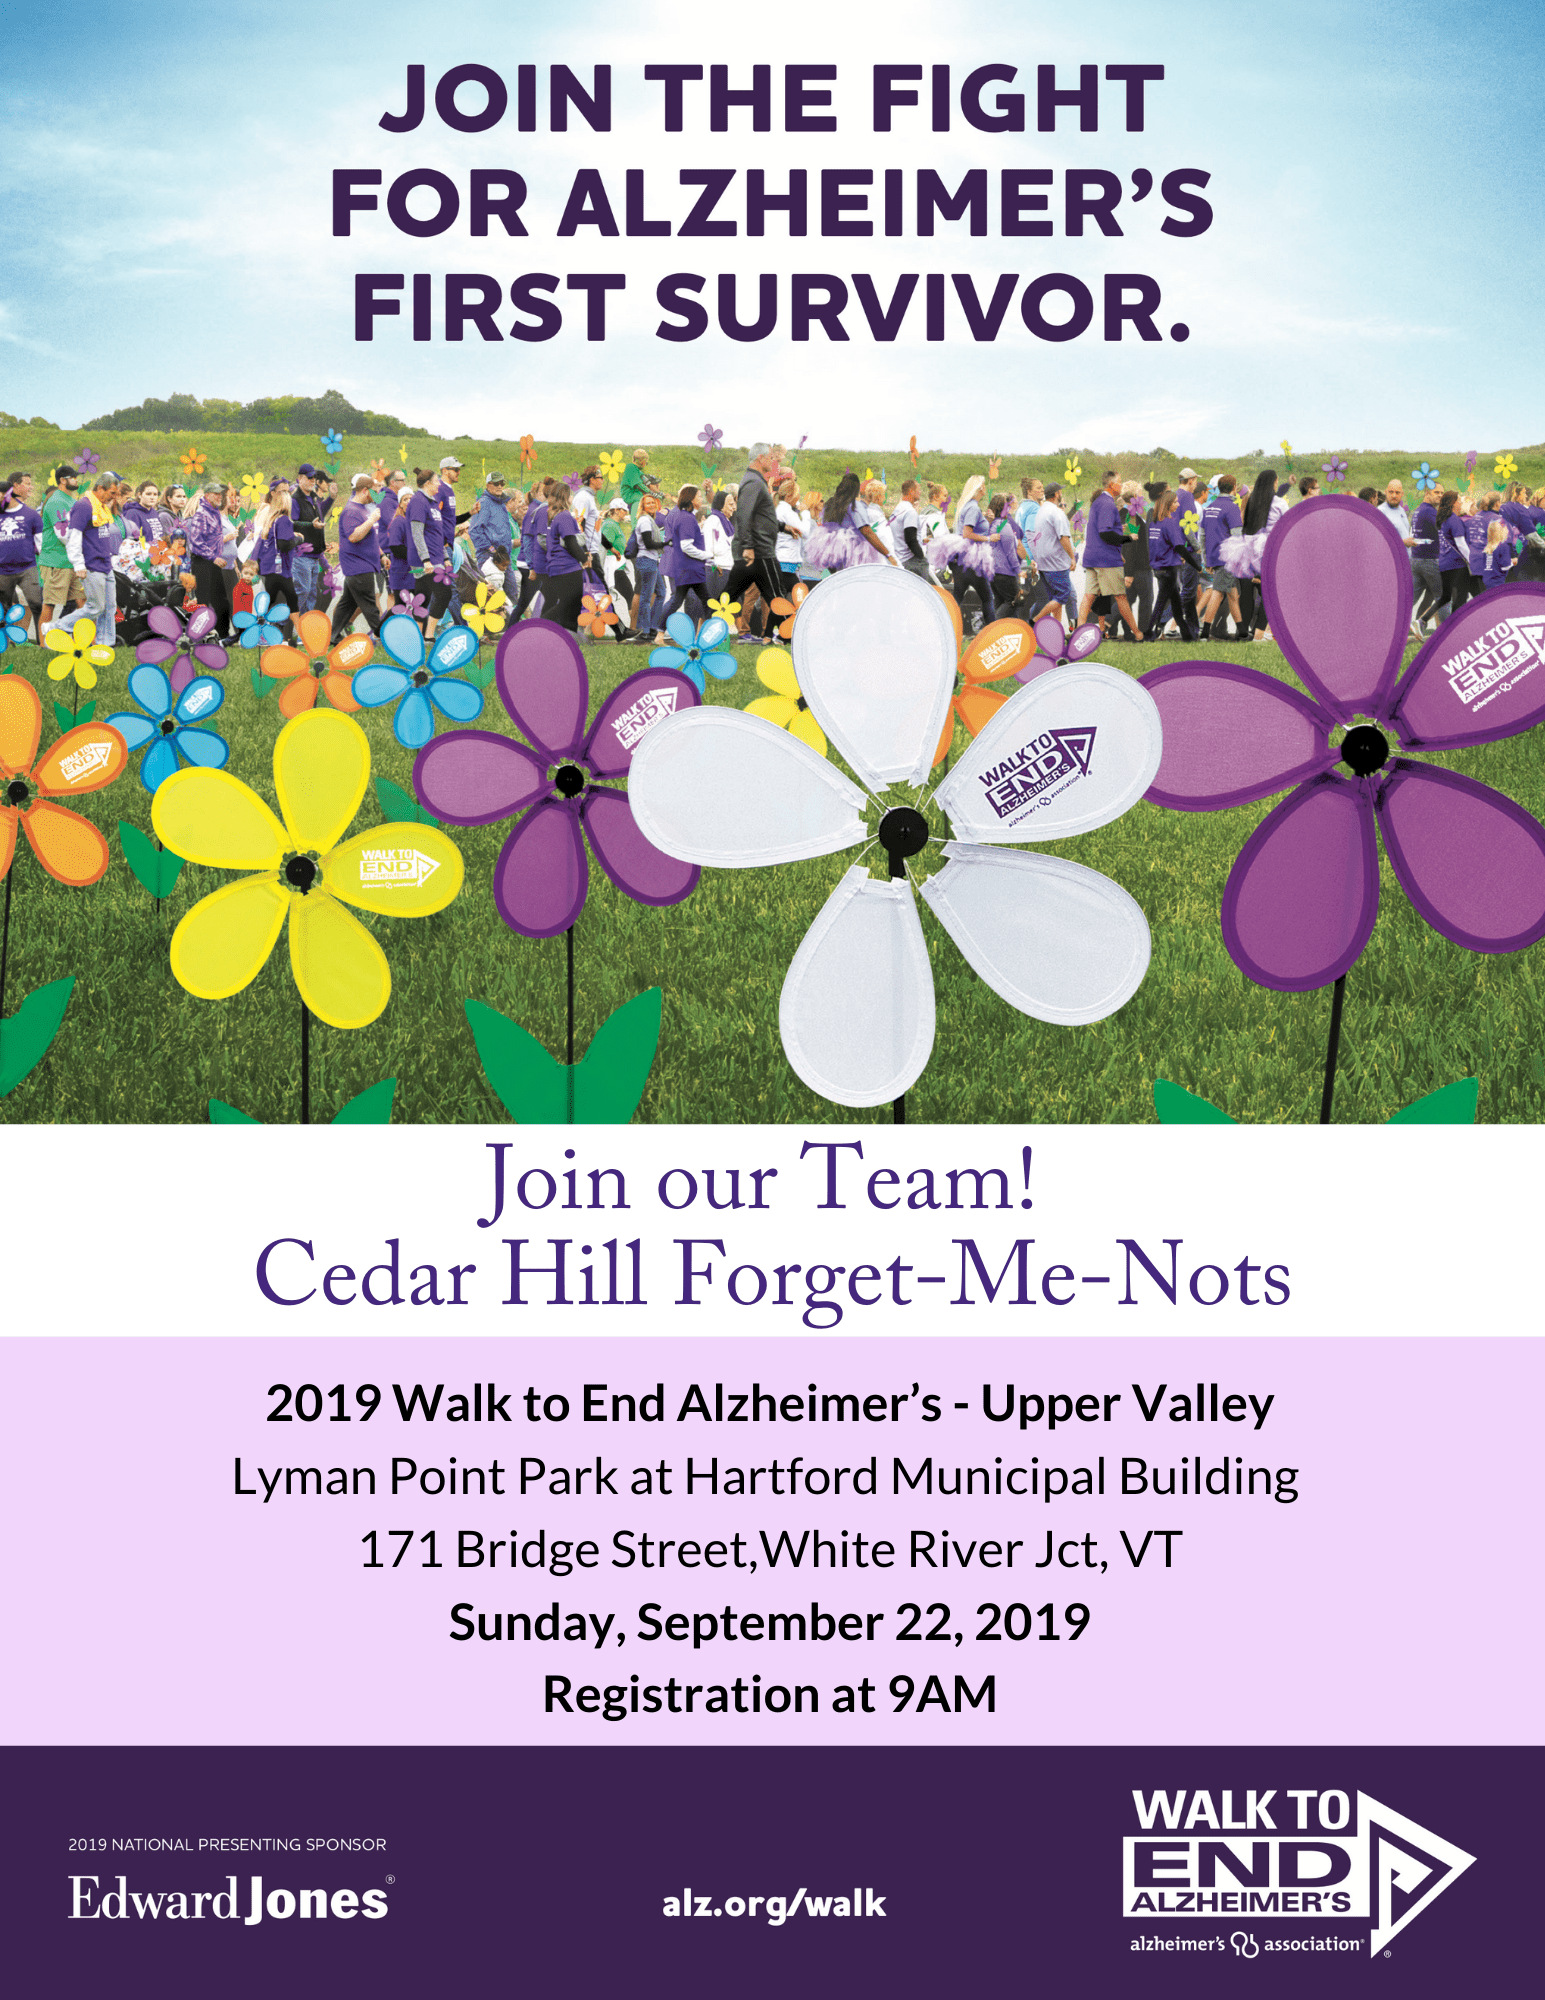 Join our Team Cedar Hill Forget-Me-Nots Flier 2019